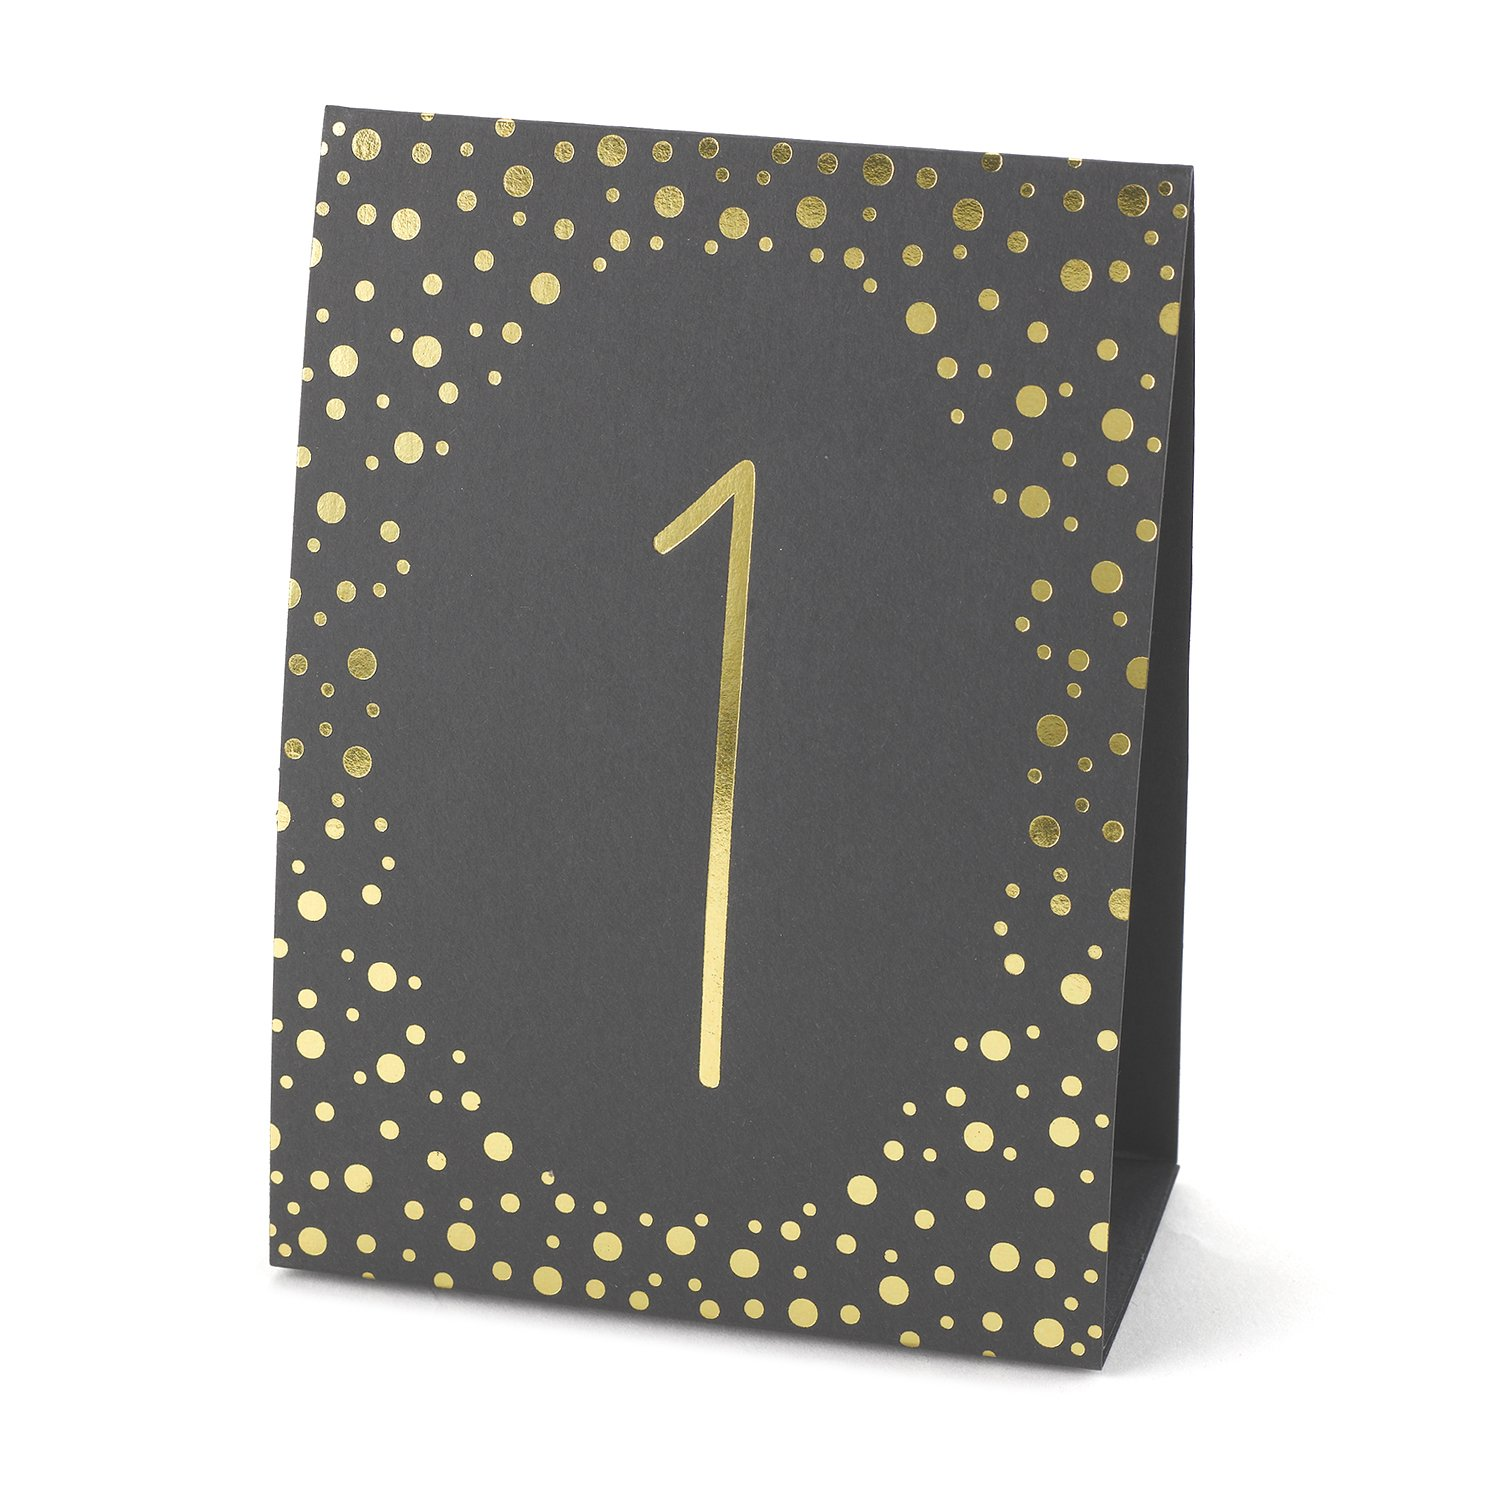 Hortense B. Hewitt Wedding Accessories Gold Polka Dot Table Tents, Numbers 1 to 40, Black/Gold 35084